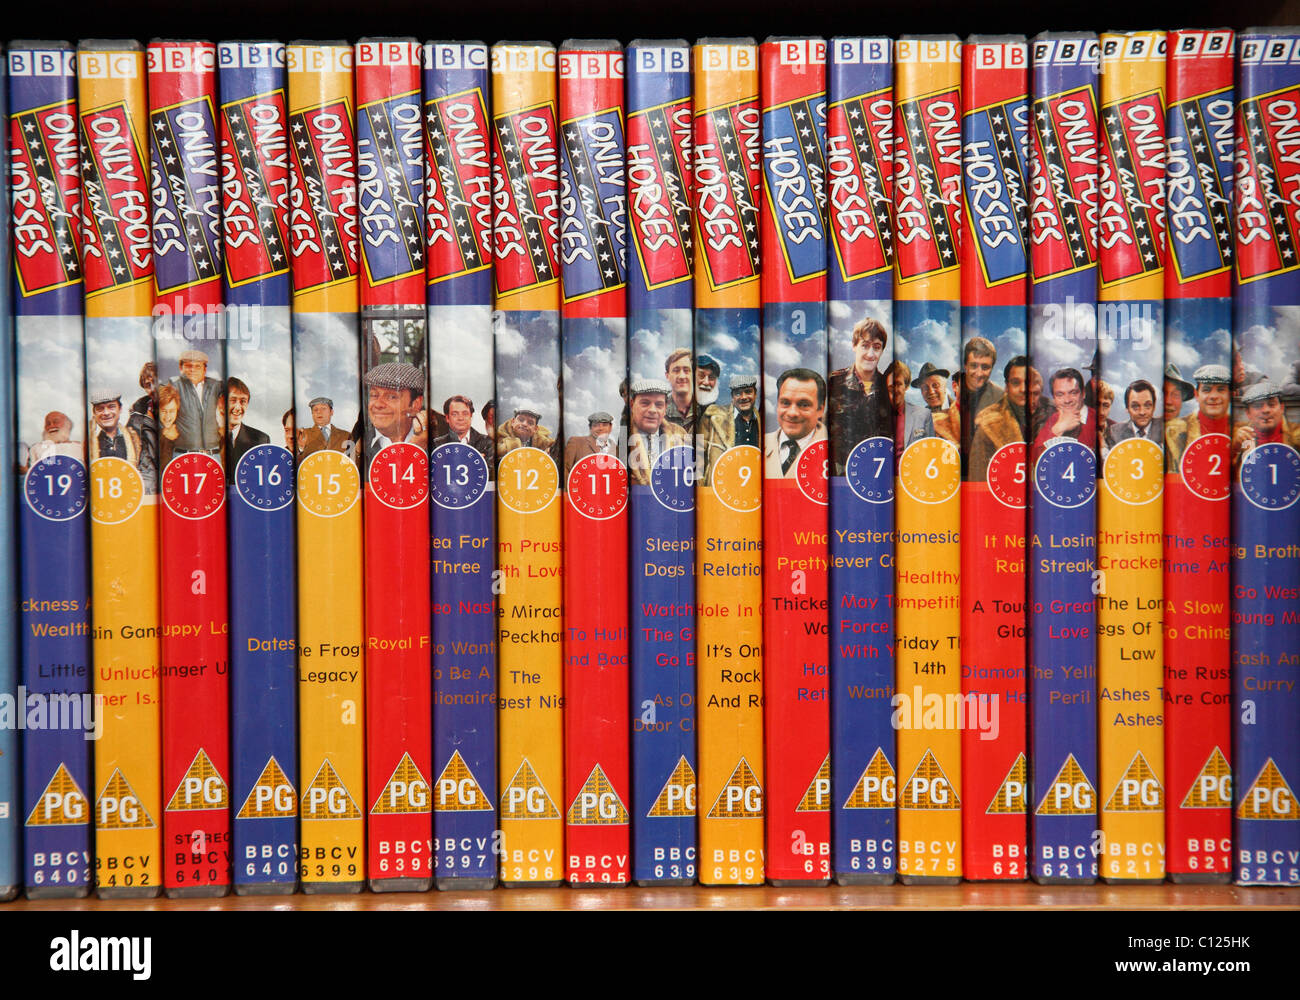 The BBC Only Fools and Horses comedy TV show DVD collection. - Stock Image